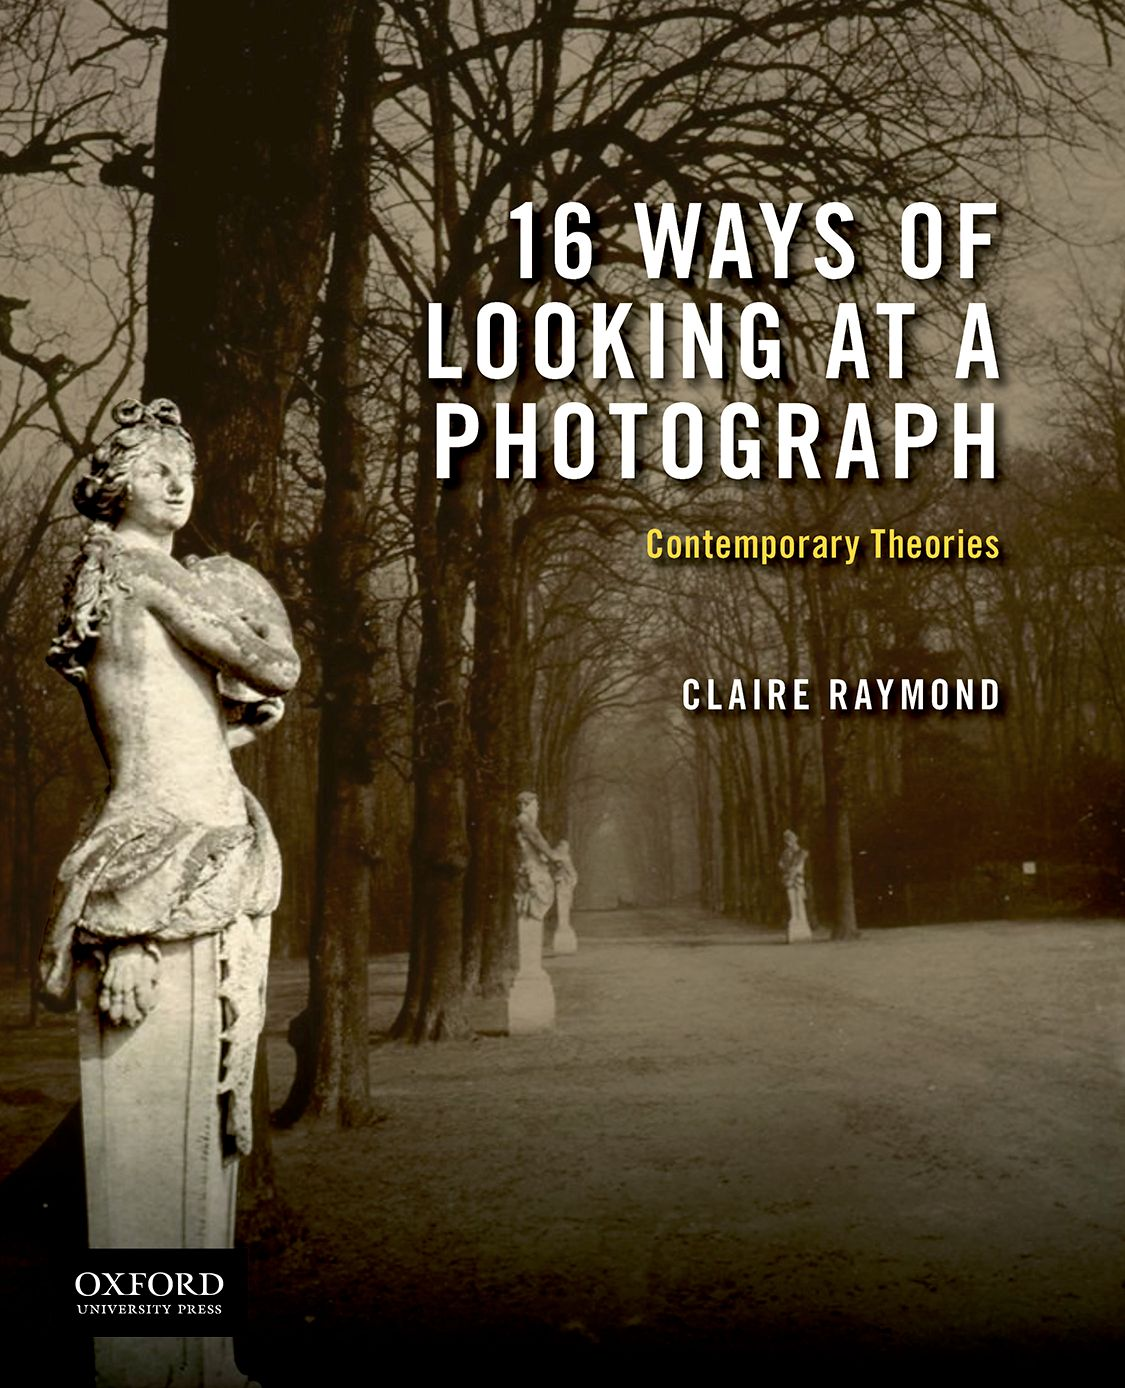 16 Ways of Looking at a Photograph